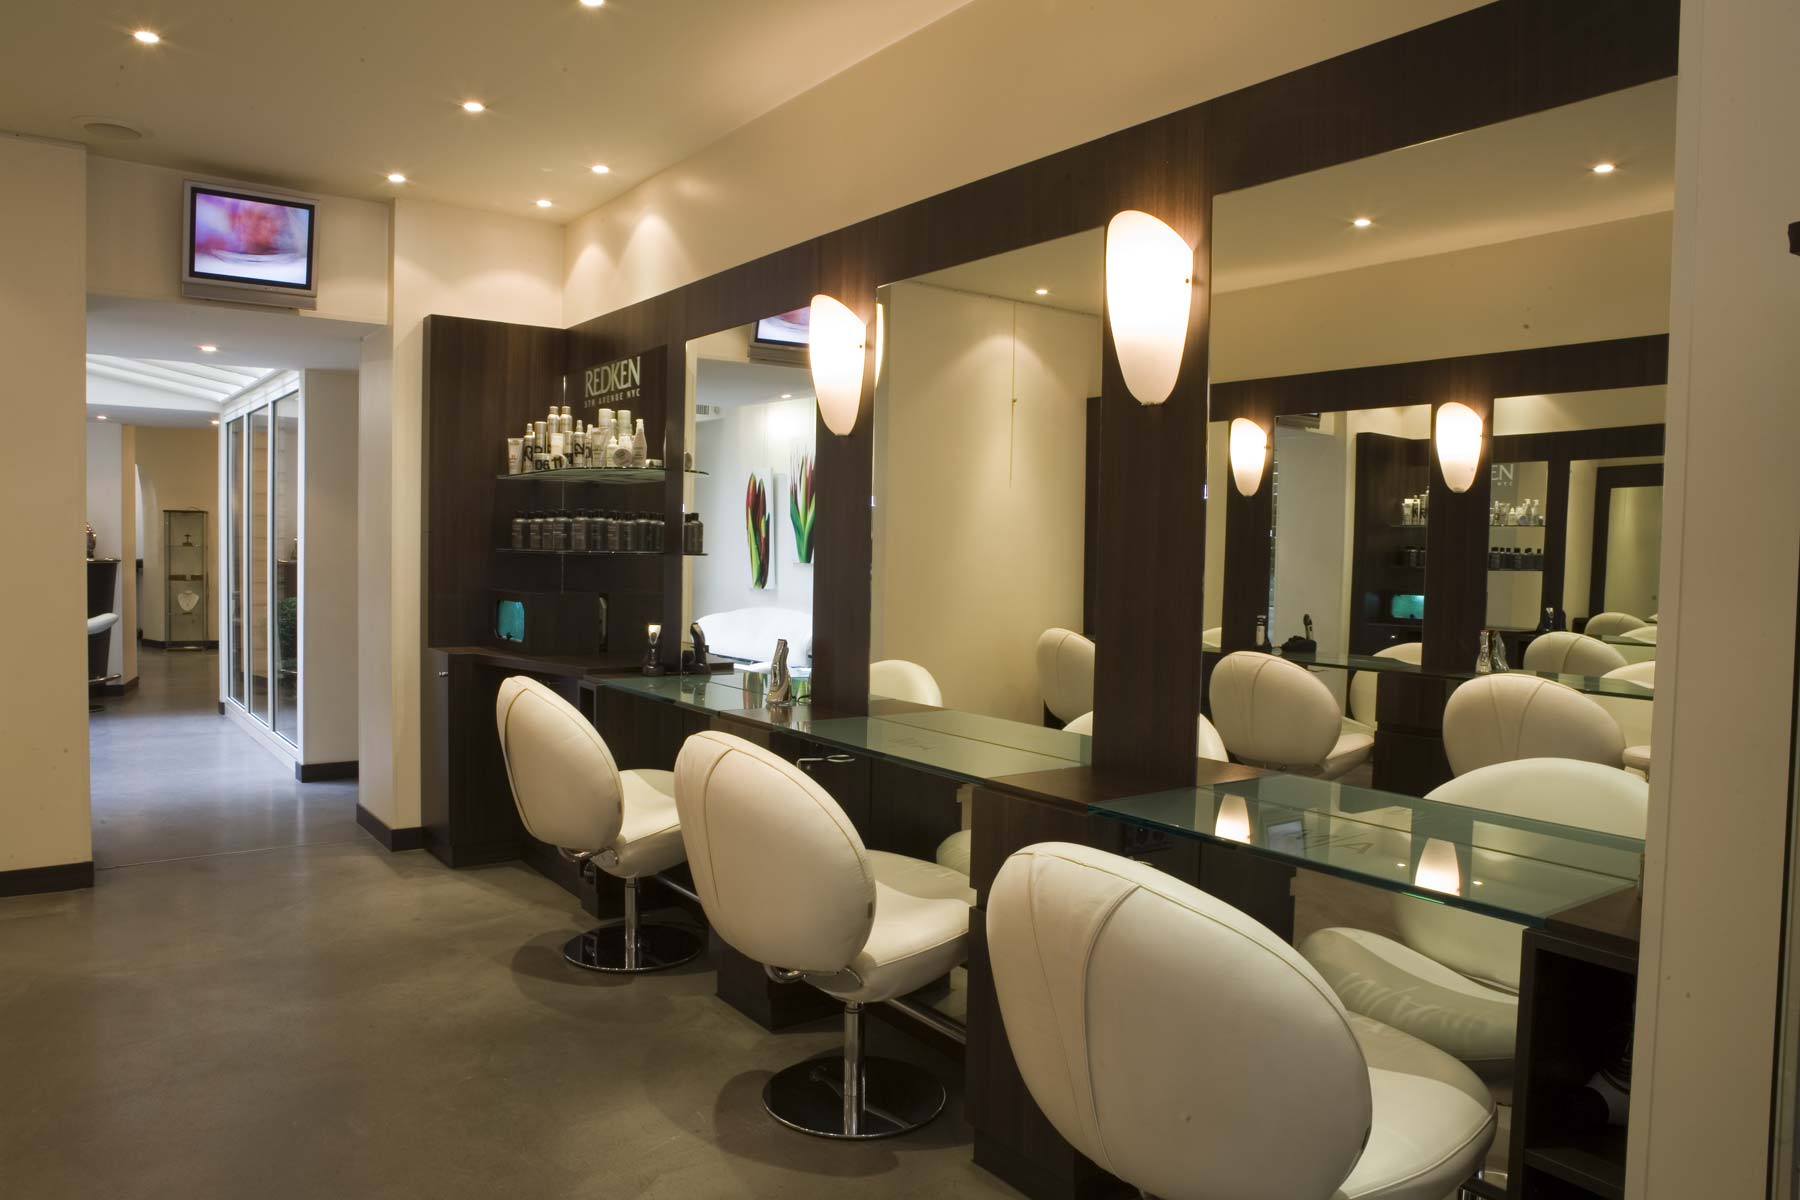 Coiffure salon coiffure institut beaut relooking paris 75 for Photos de salons